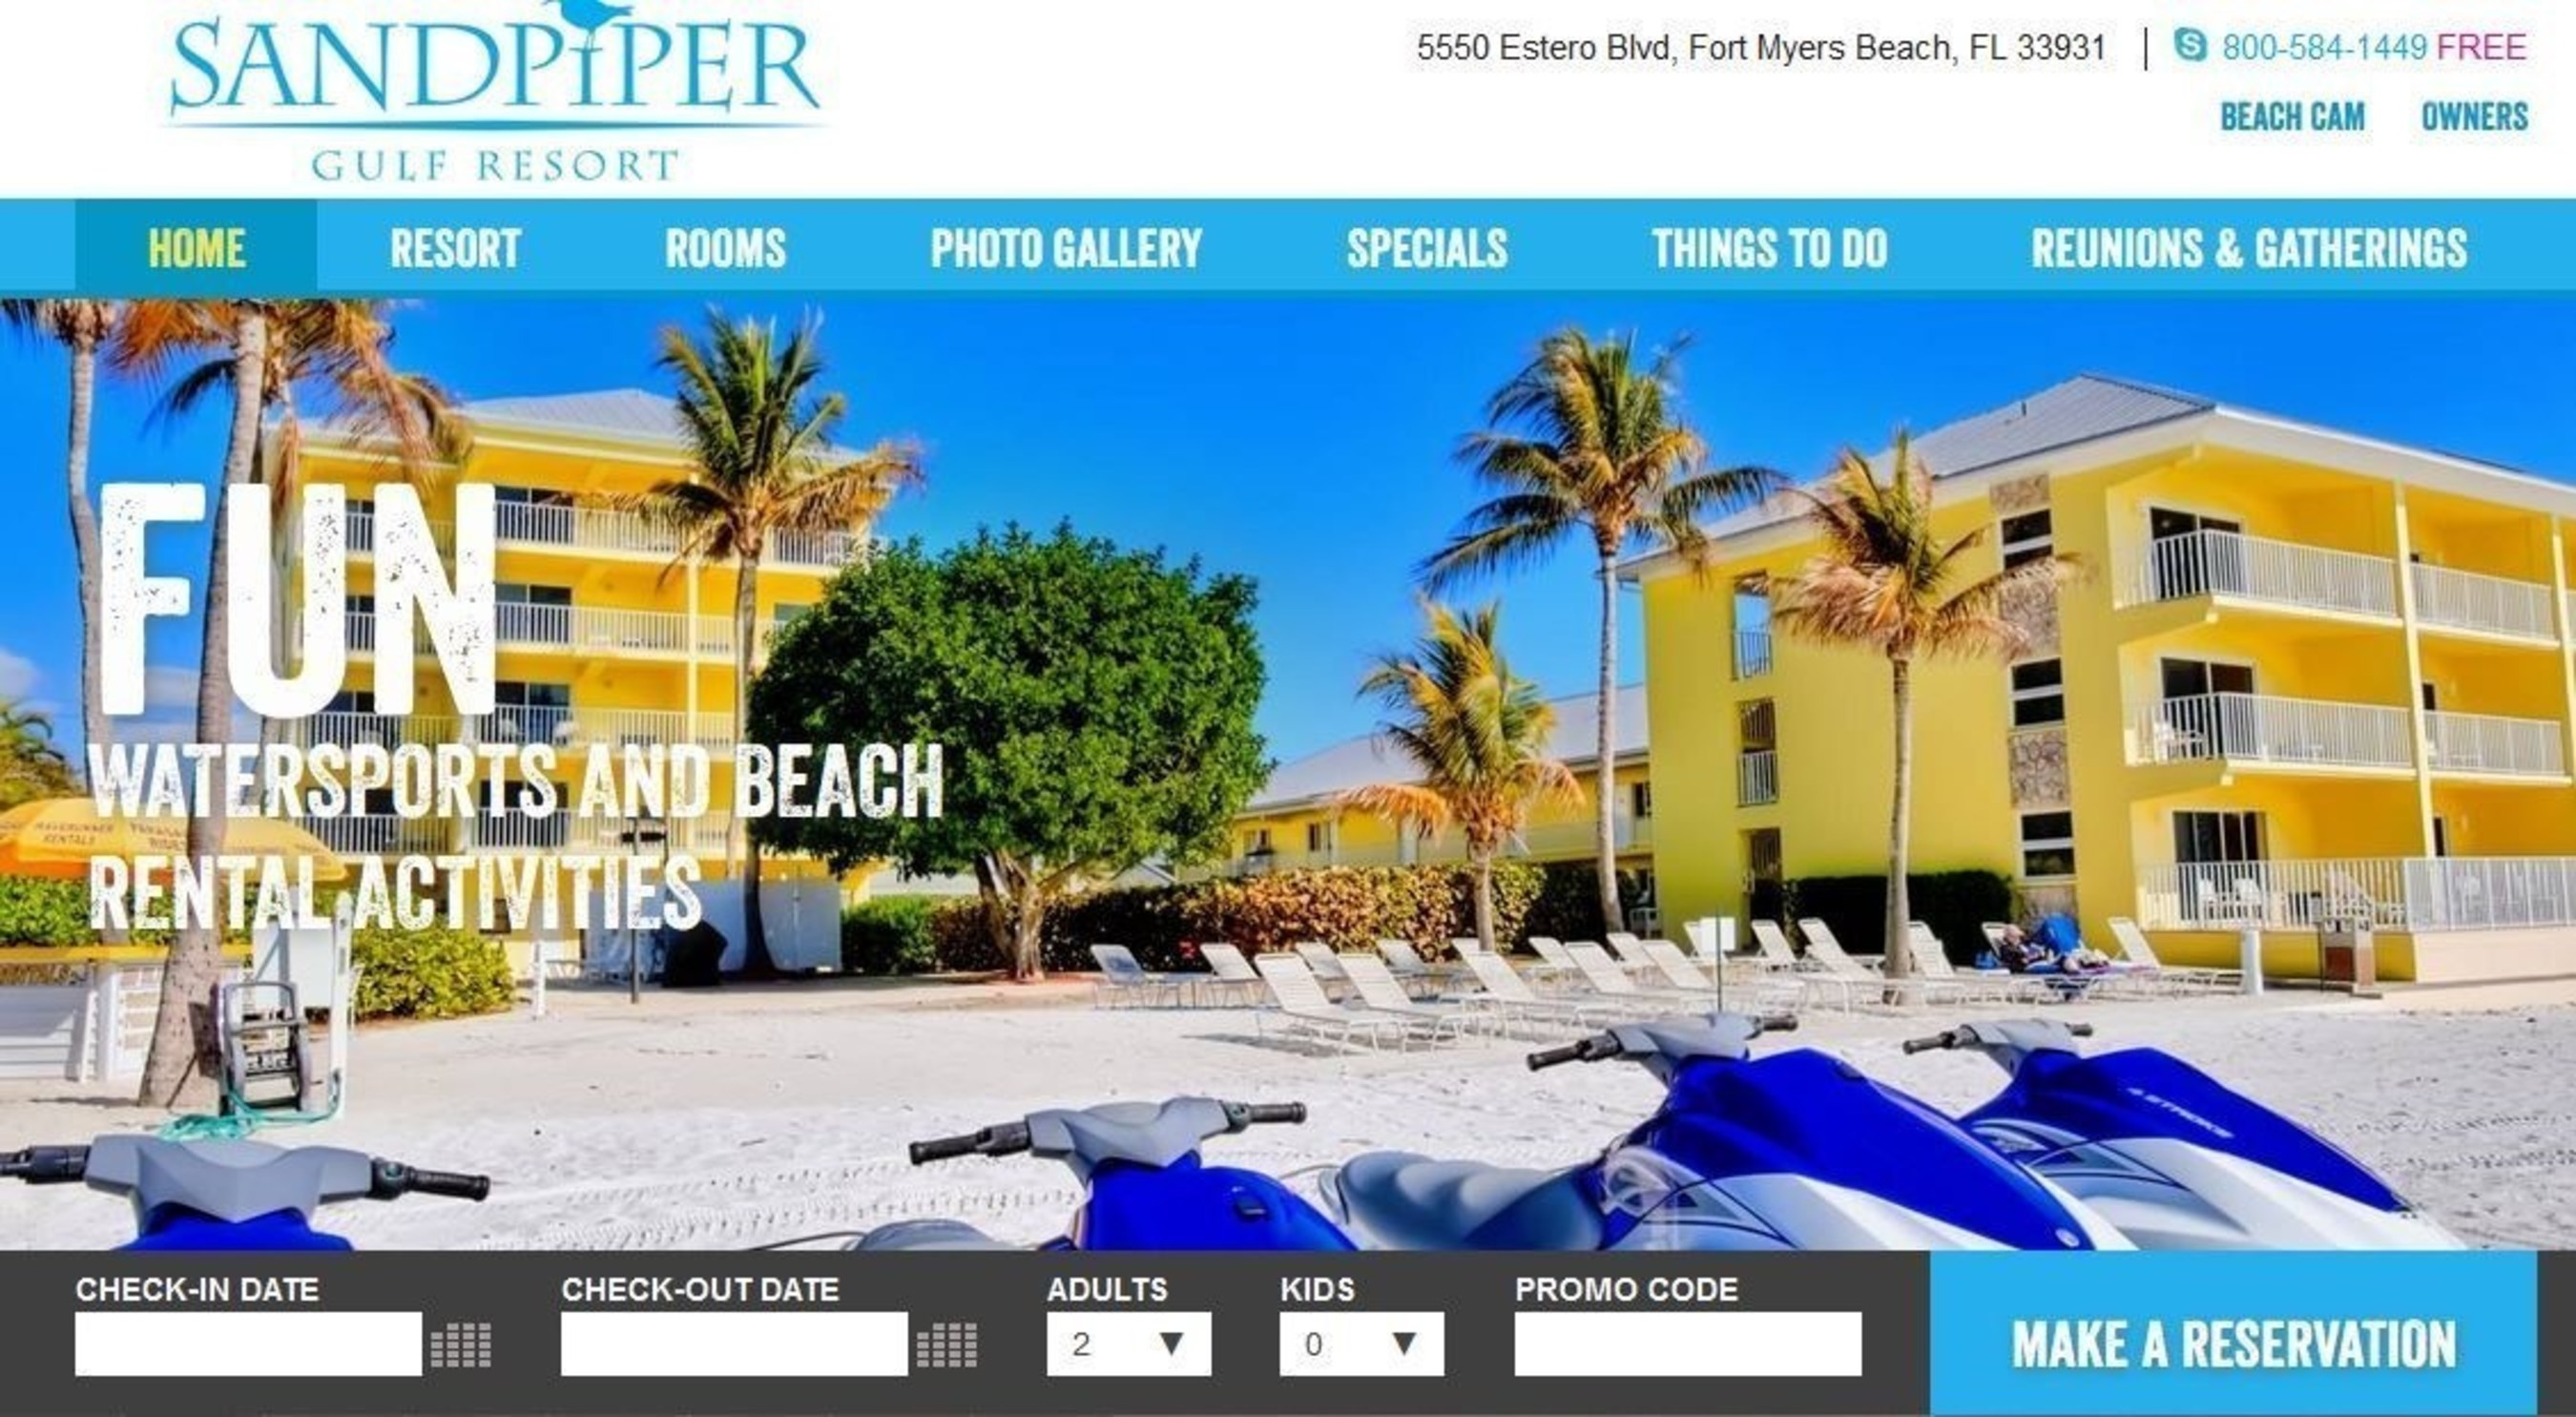 Sandpiper Gulf Resort Brightens Online Booking Experience With New Mobile-Friendly Website